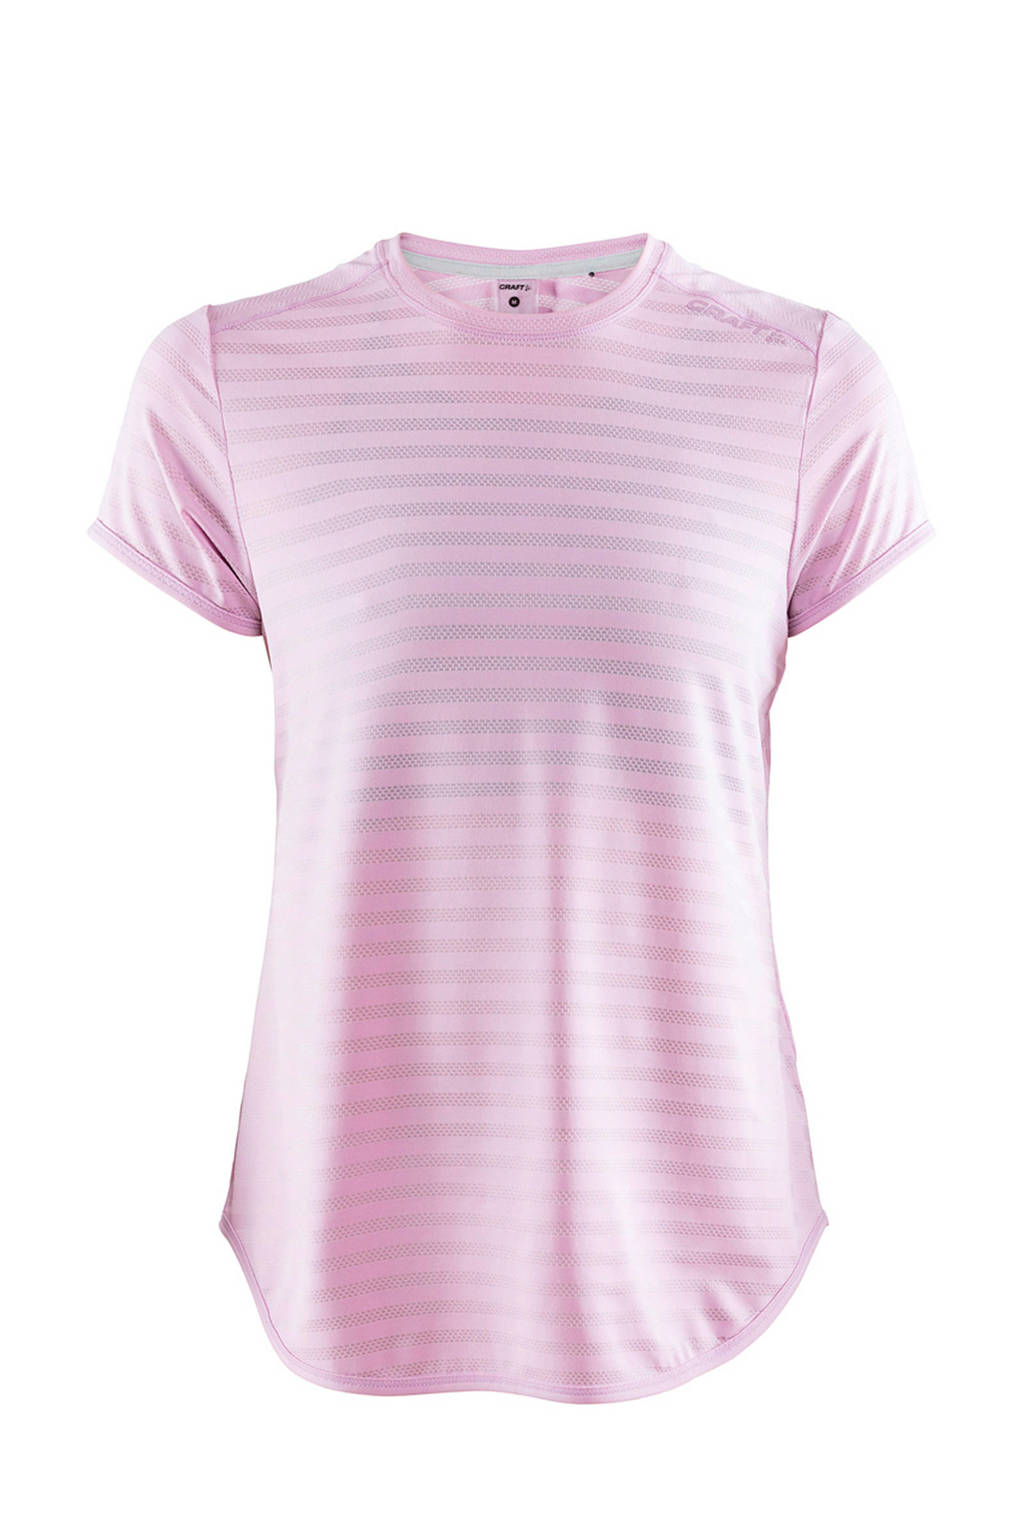 Craft sport T-shirt met all over streepprint roze, Roze